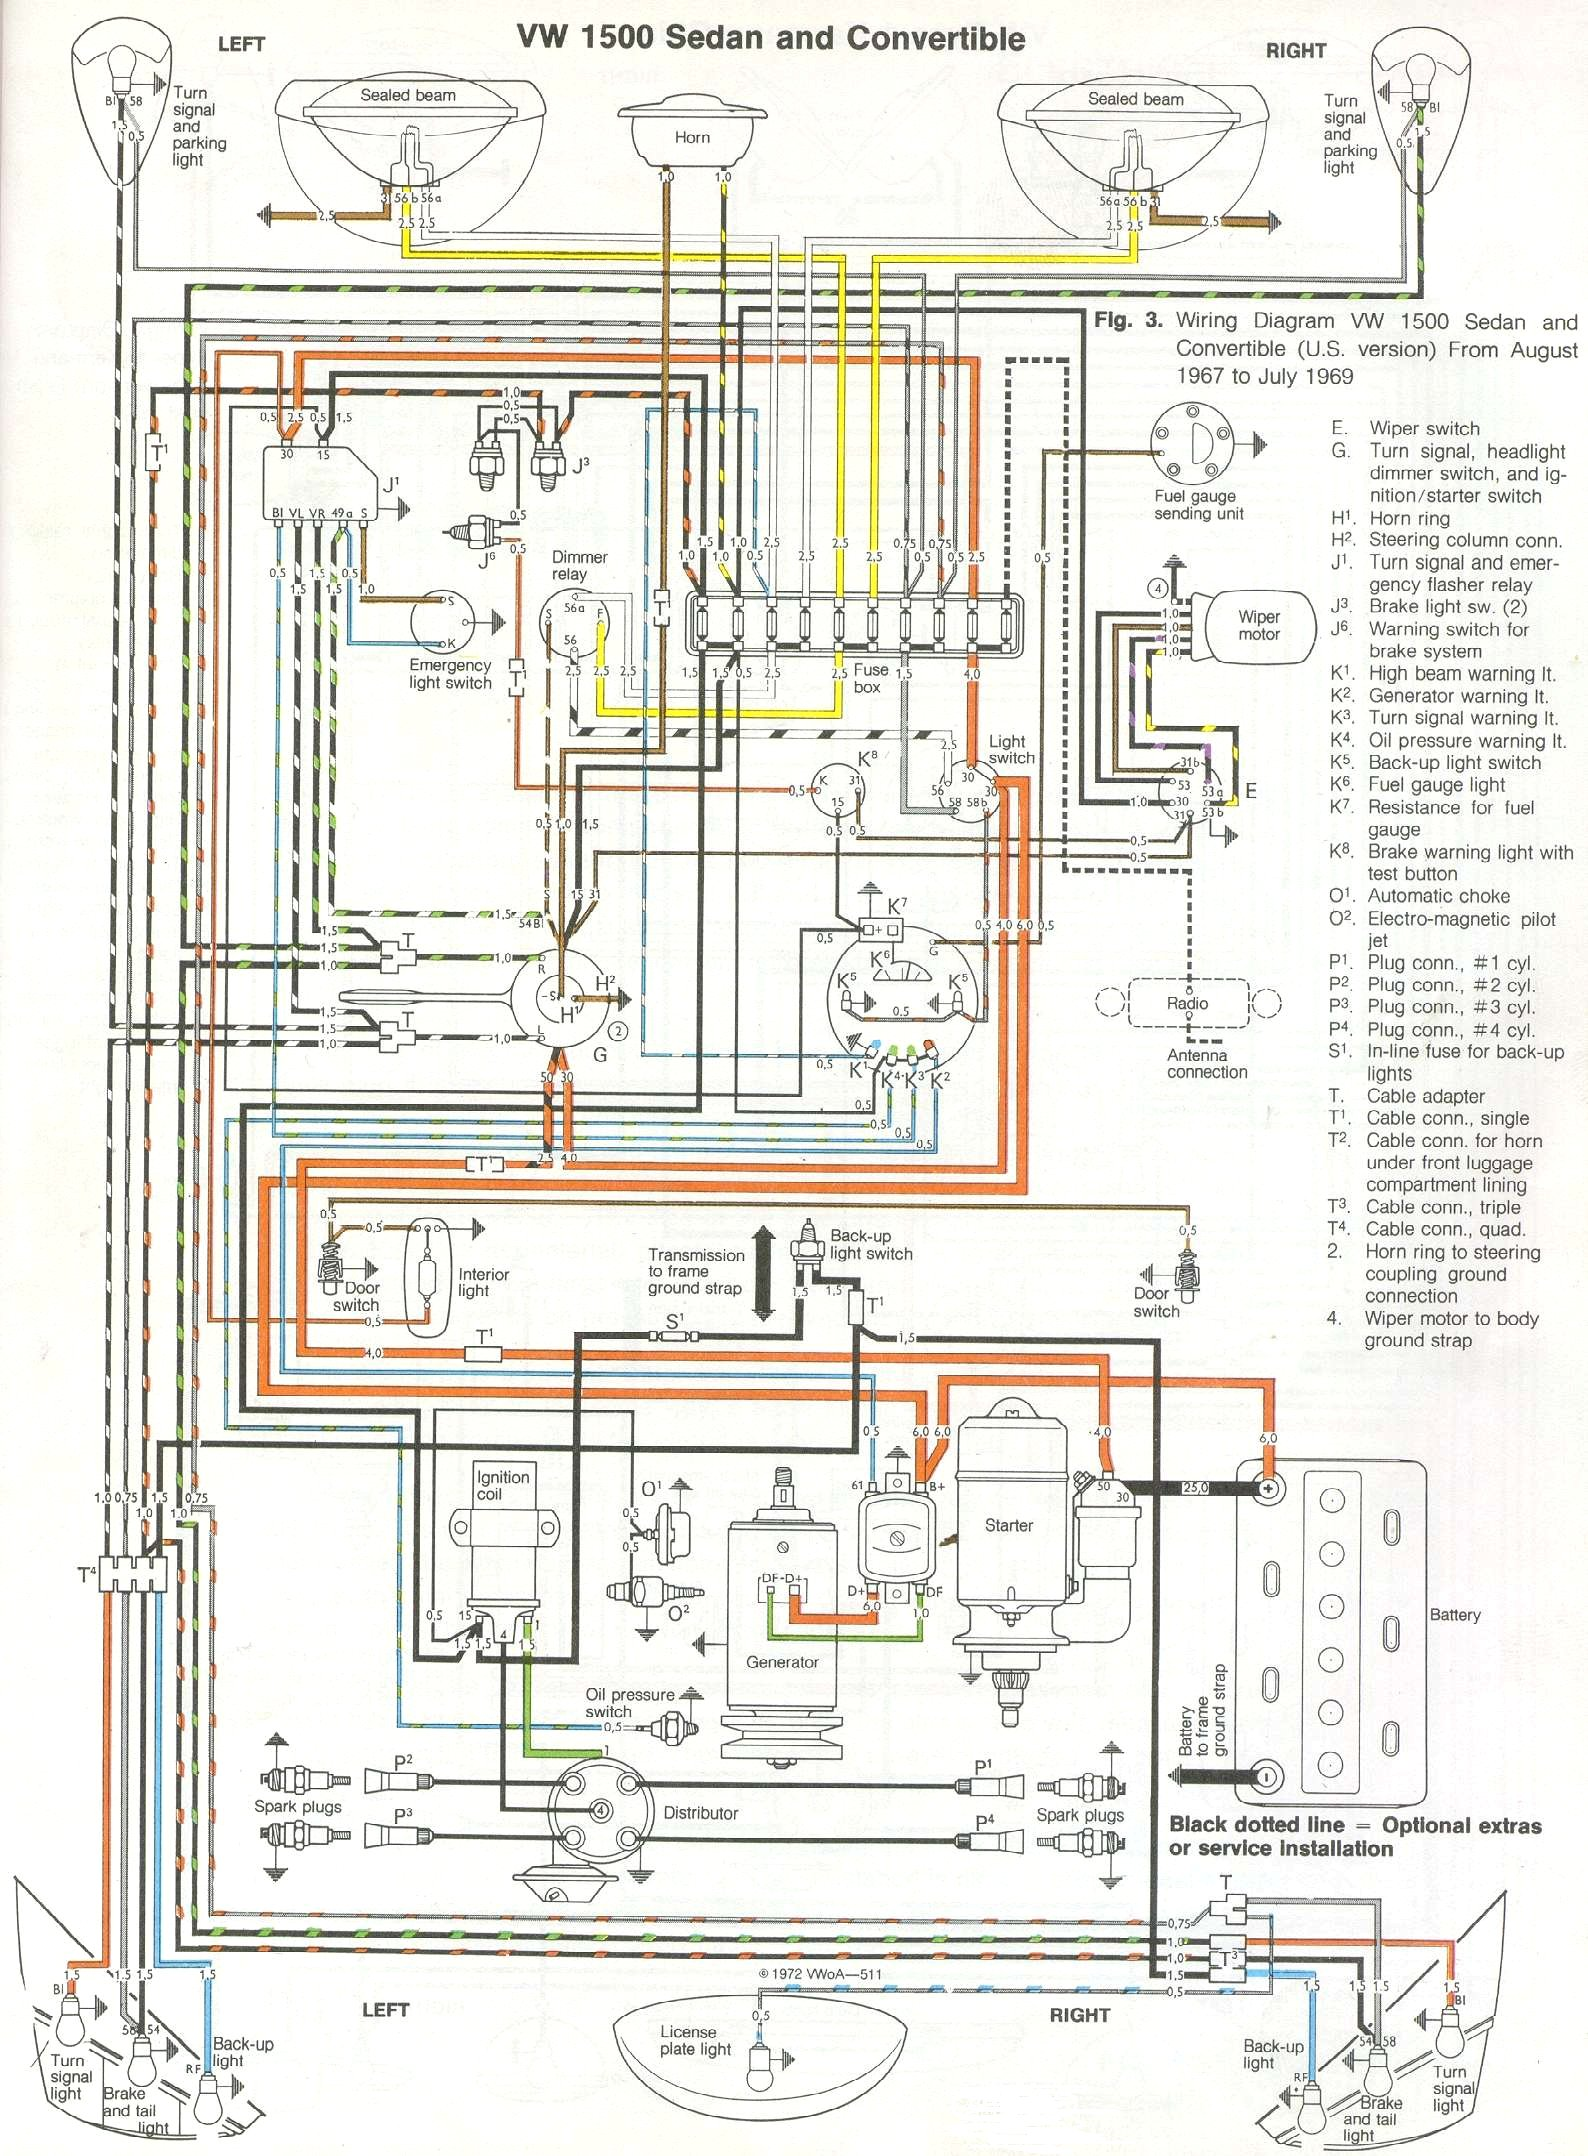 1968 69 beetle wiring diagram (usa) thegoldenbug com Electrical Wiring